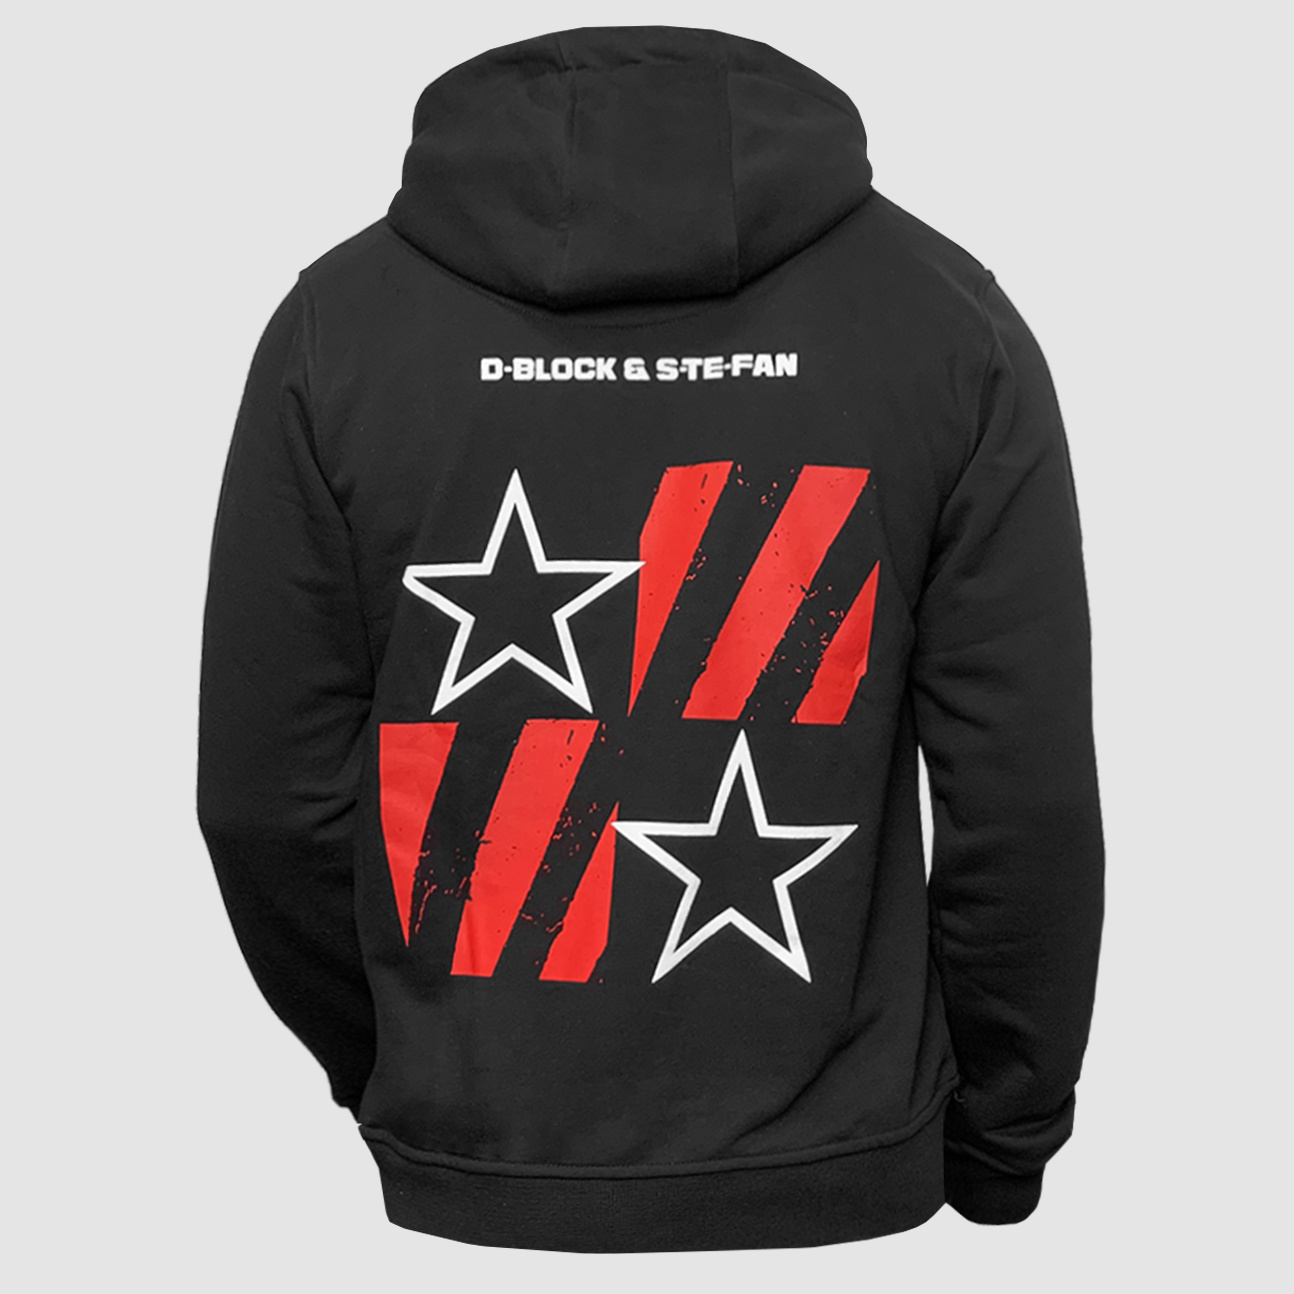 Stars & Stripes Hooded Sweater